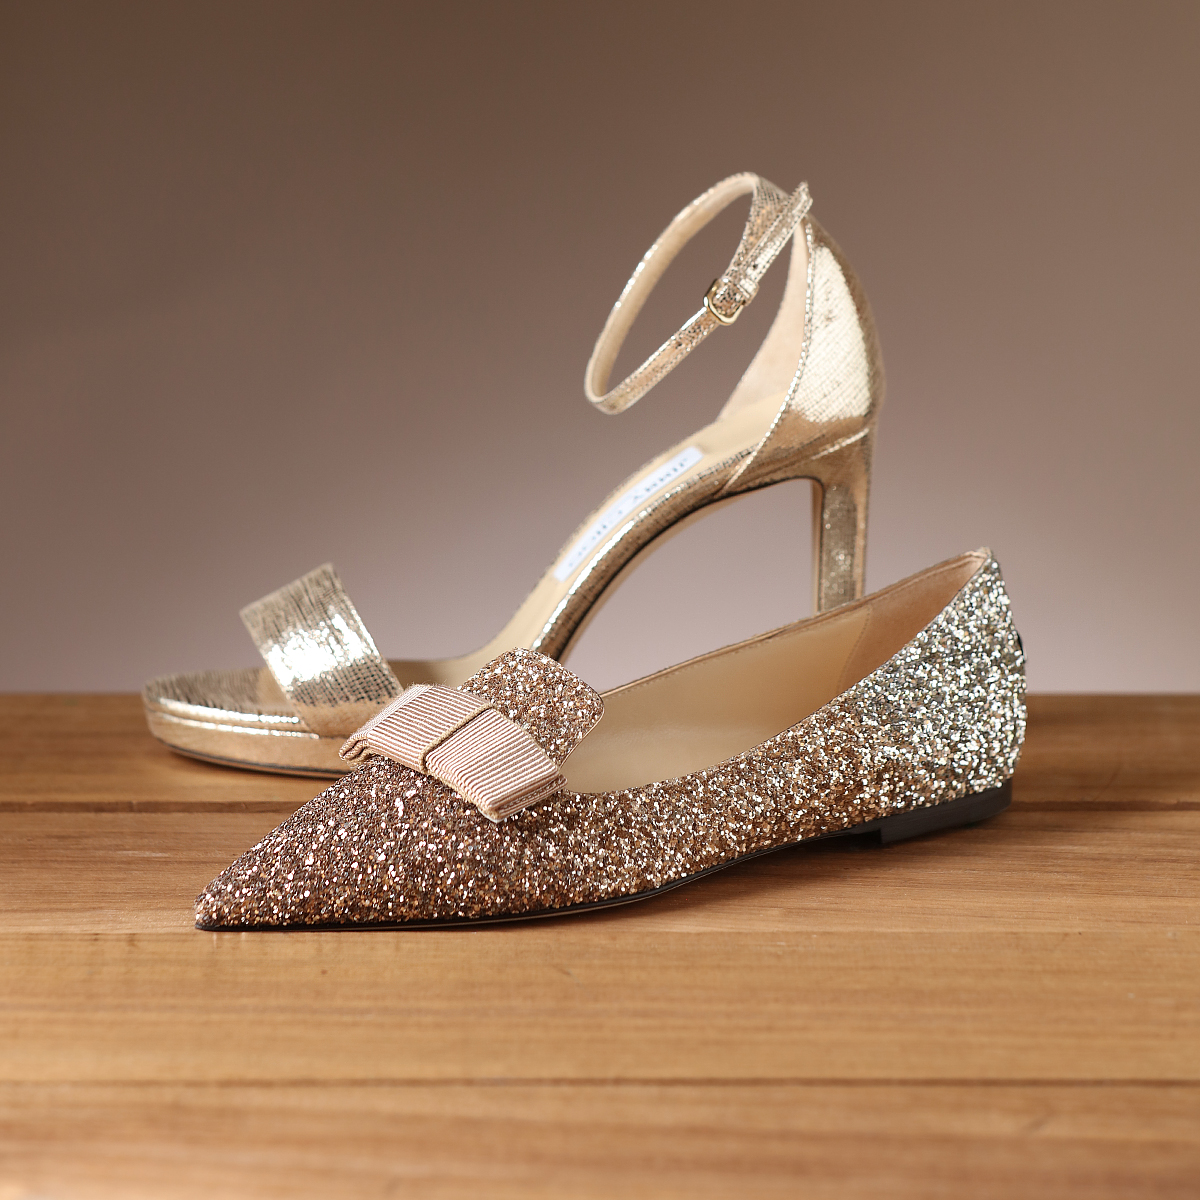 Jimmy Choo Womens Shoes